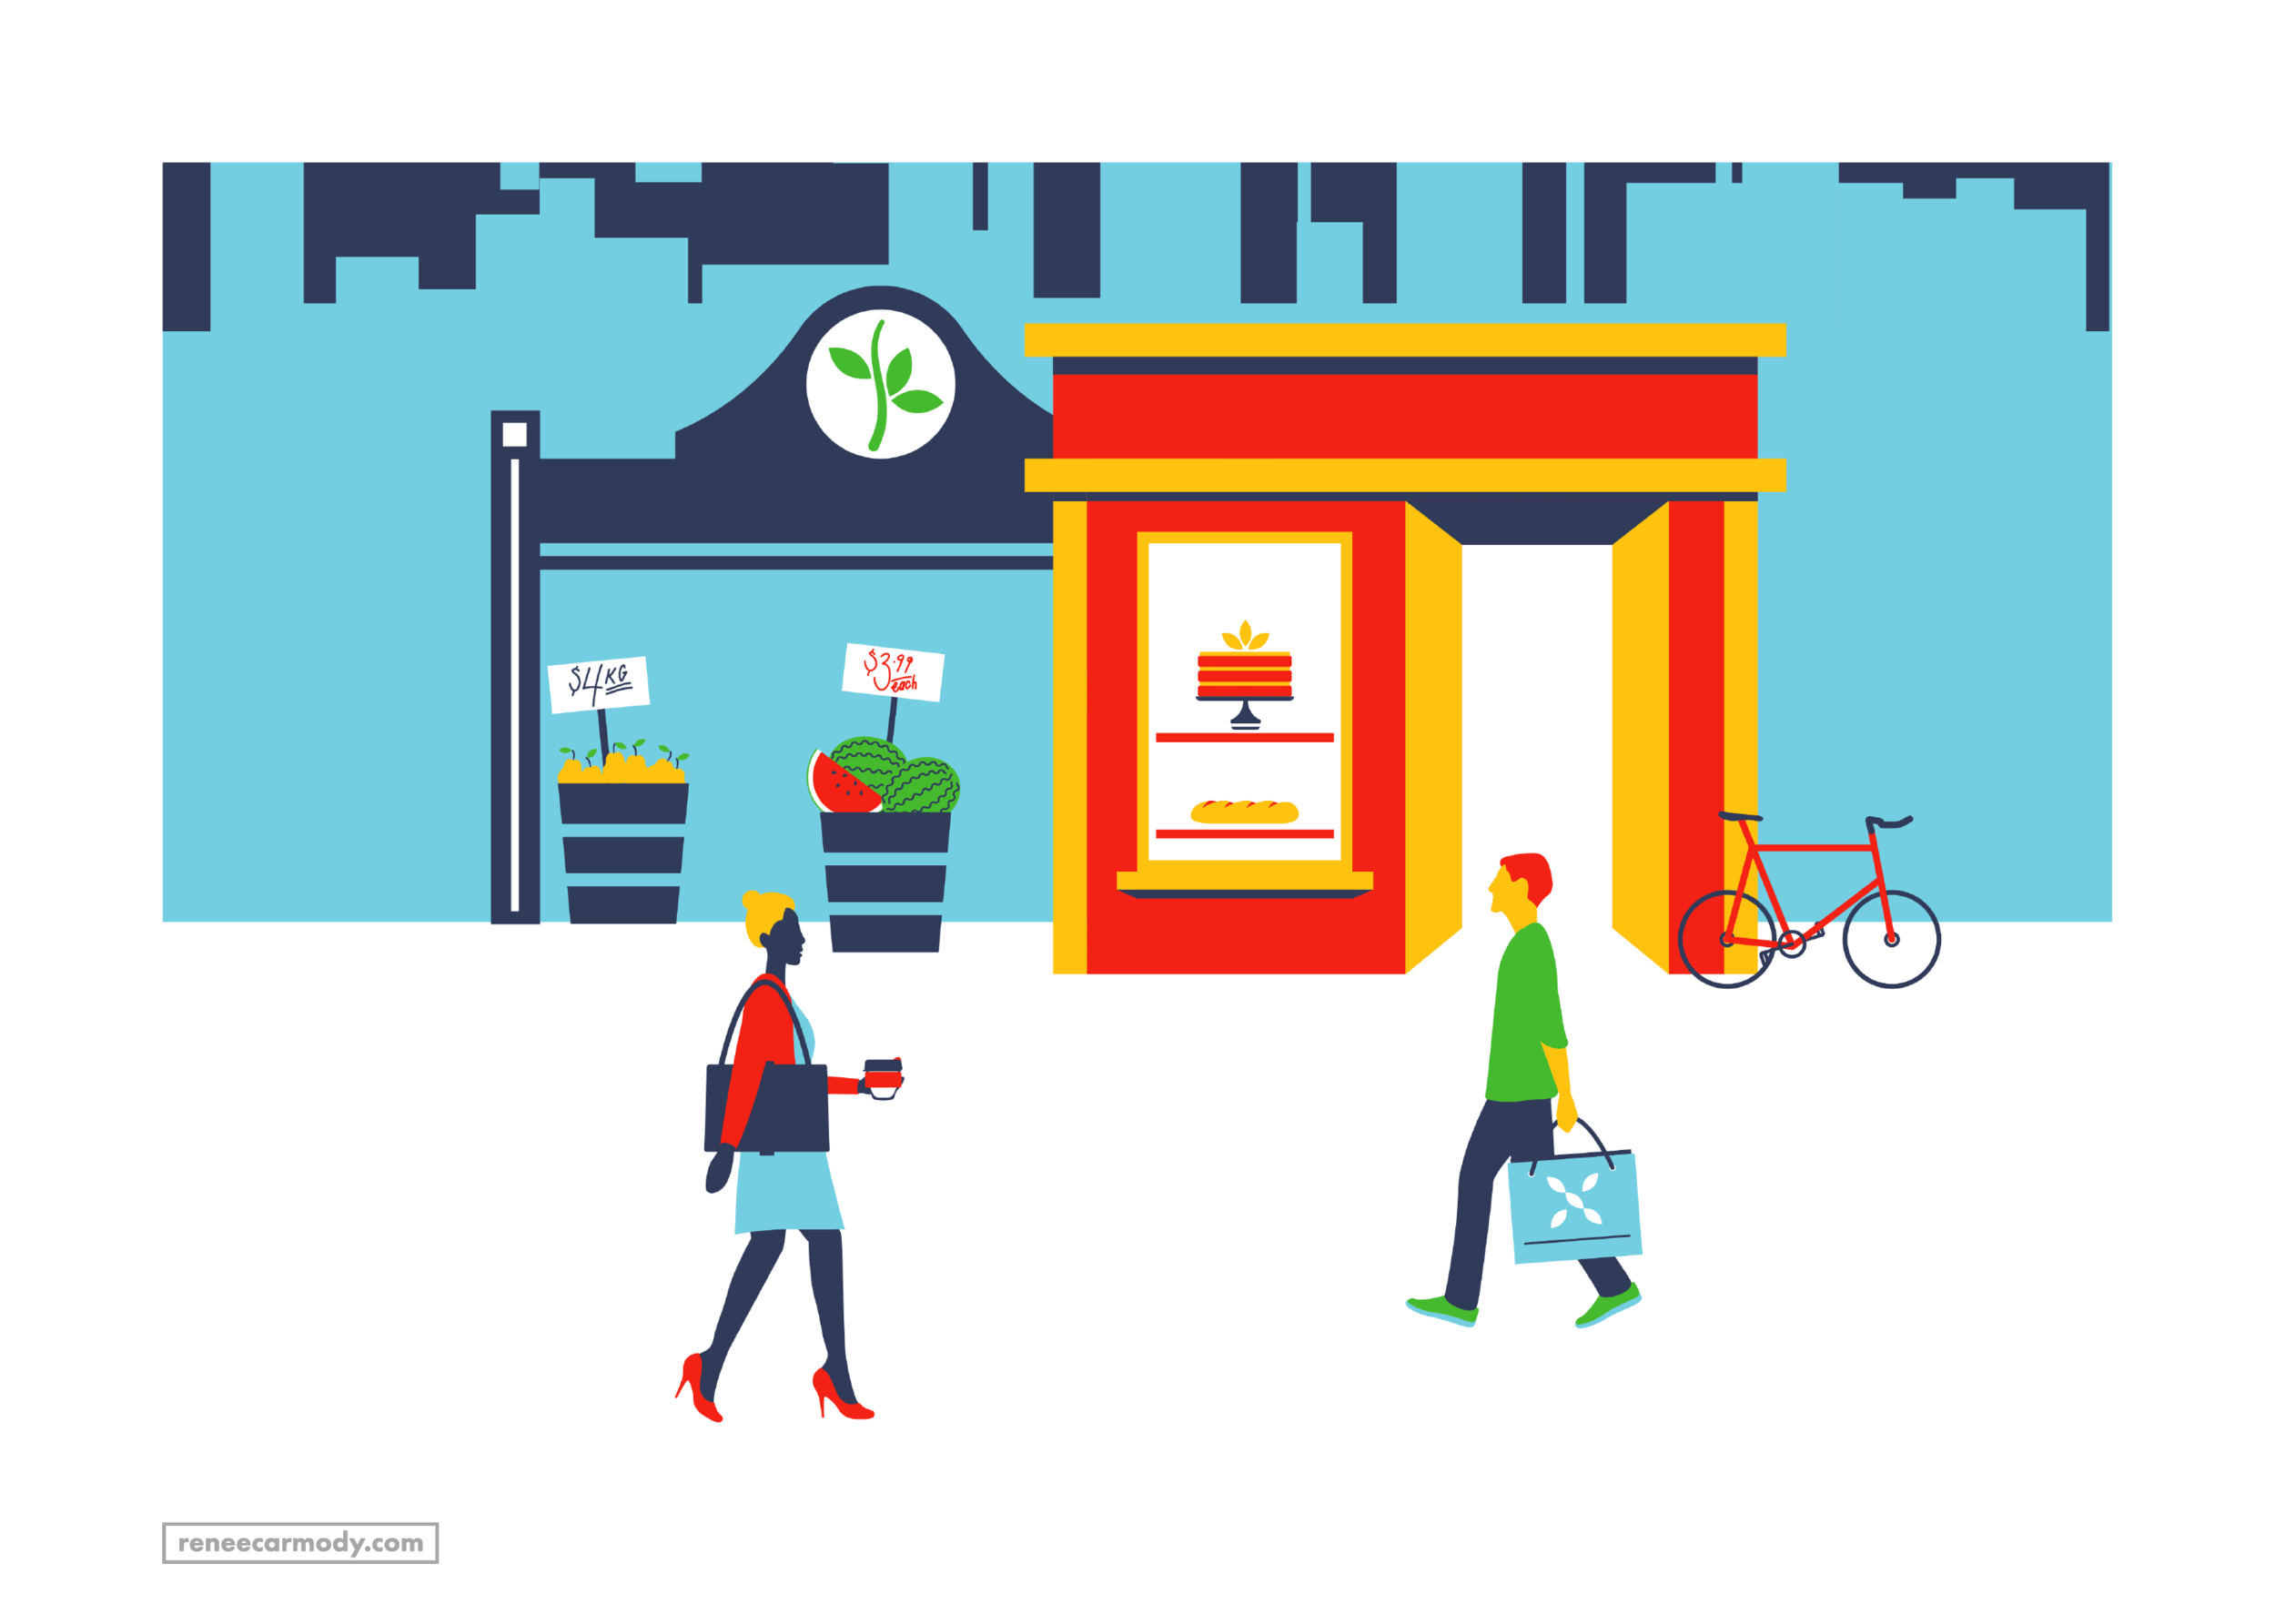 Shopping and market illustration by Renee Carmody Design for Flourish Parkside, comissioned by Savi Communications—www.reneecarmody.com